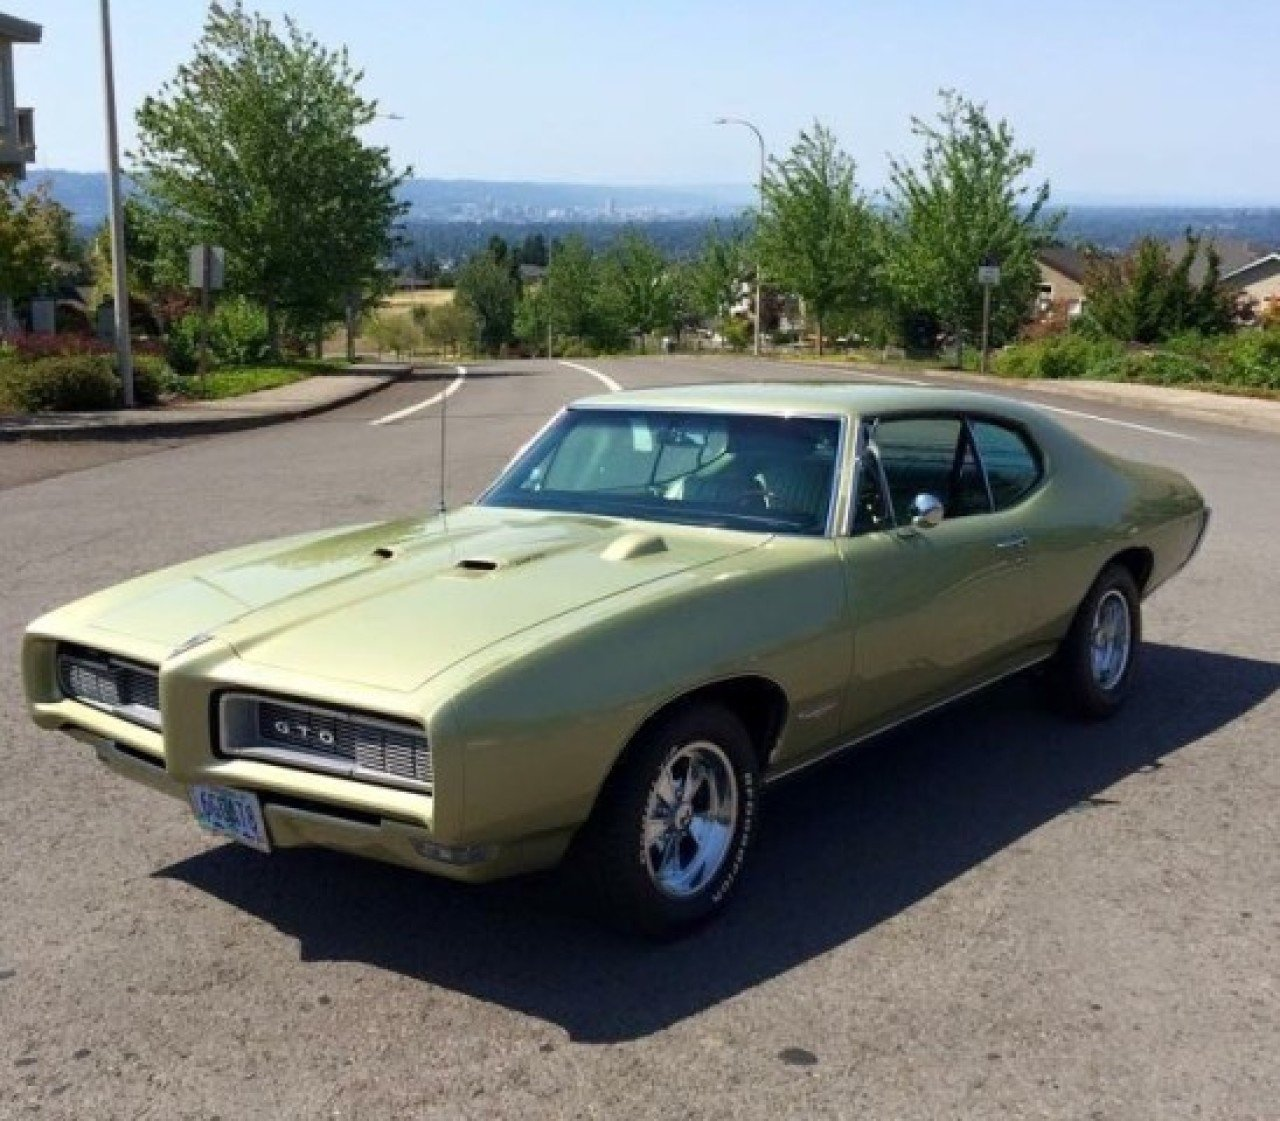 1968 Charger For Sale >> 1968 Pontiac GTO for sale near Damascus, Oregon 97089 - Classics on Autotrader